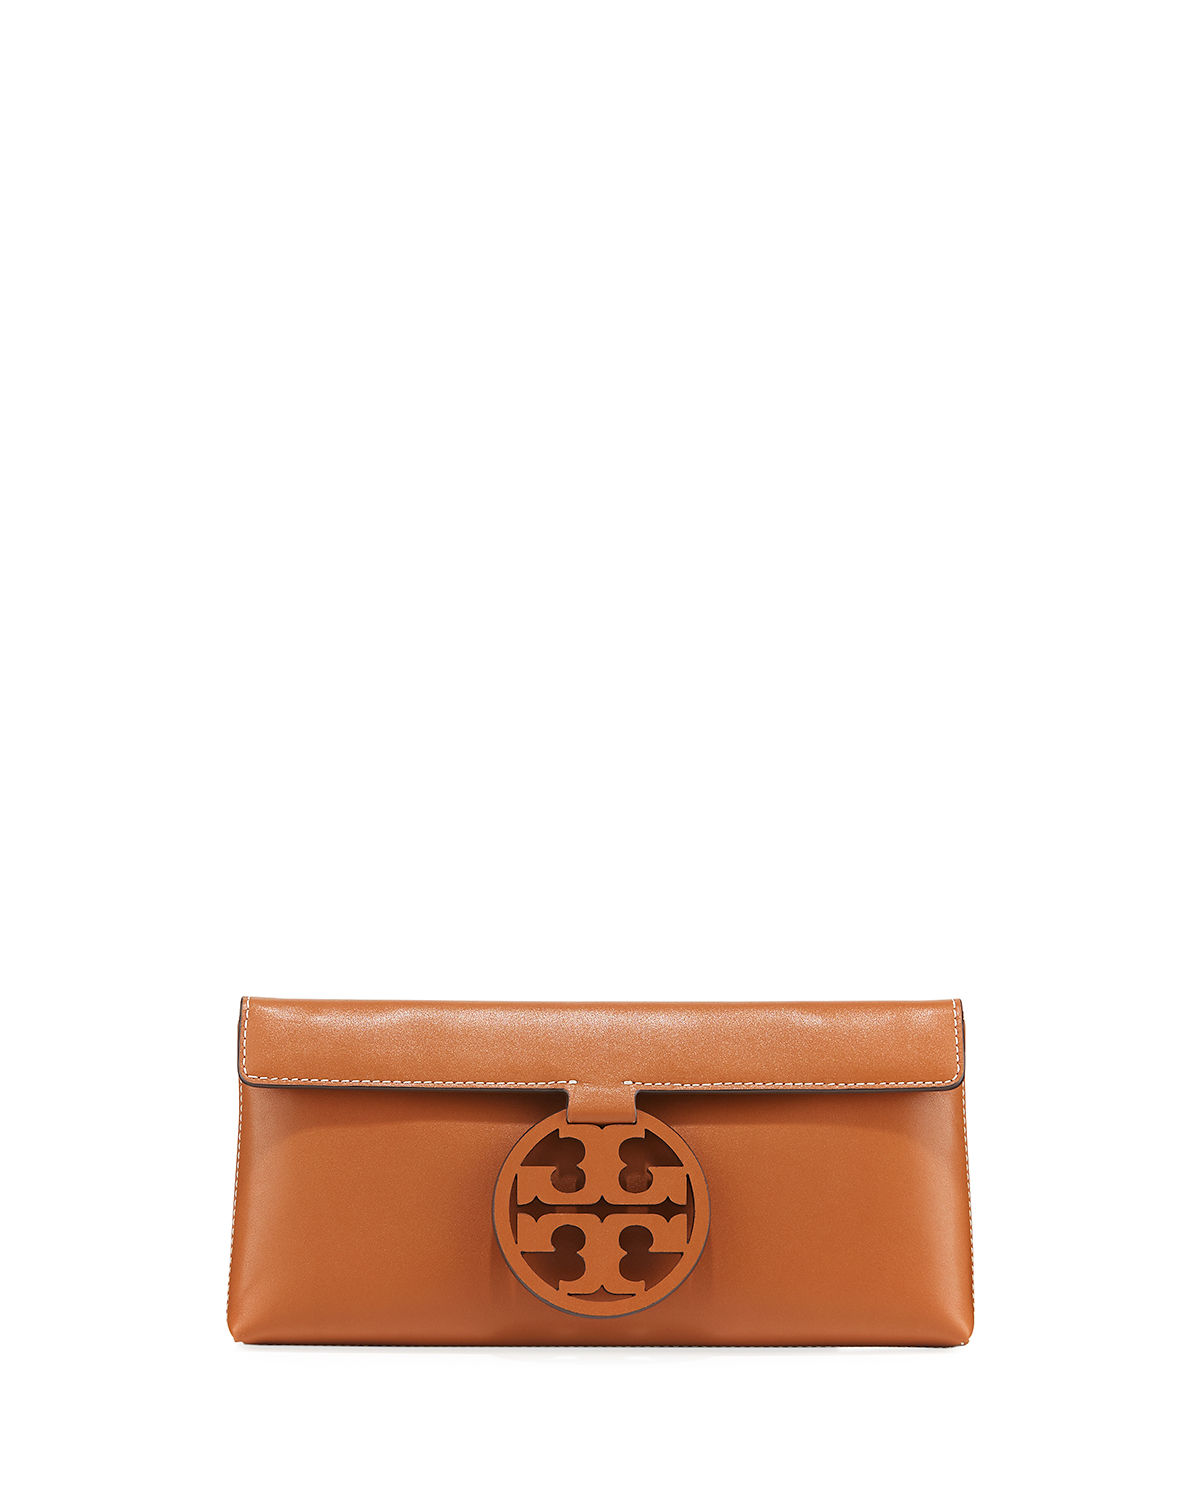 9f72a274f29d Tory Burch Miller Medallion Clutch Bag